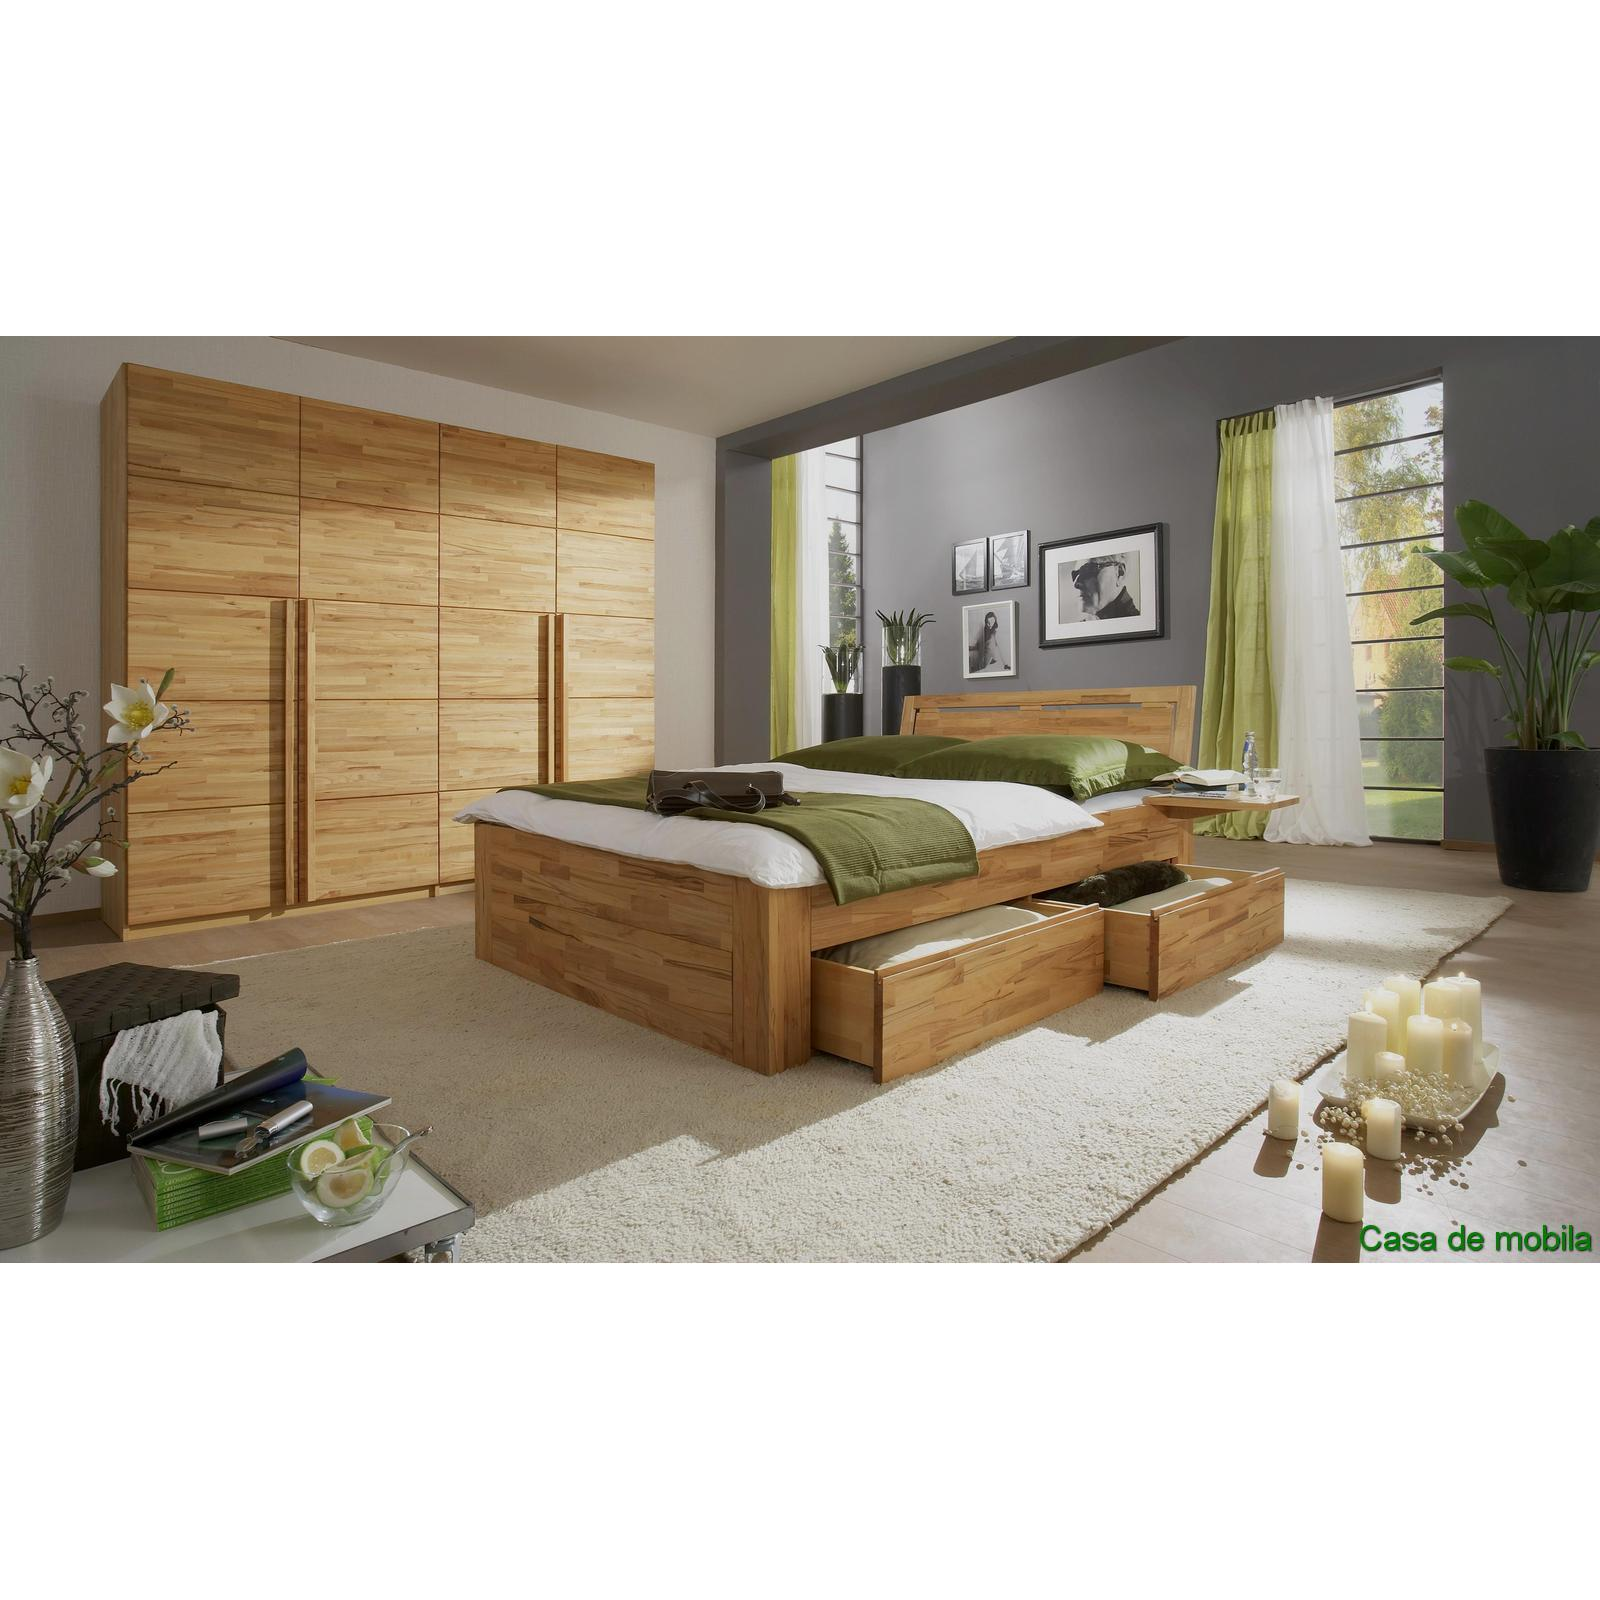 komplett kernbuche buche massiv caro mit schubladen bett 140x200. Black Bedroom Furniture Sets. Home Design Ideas